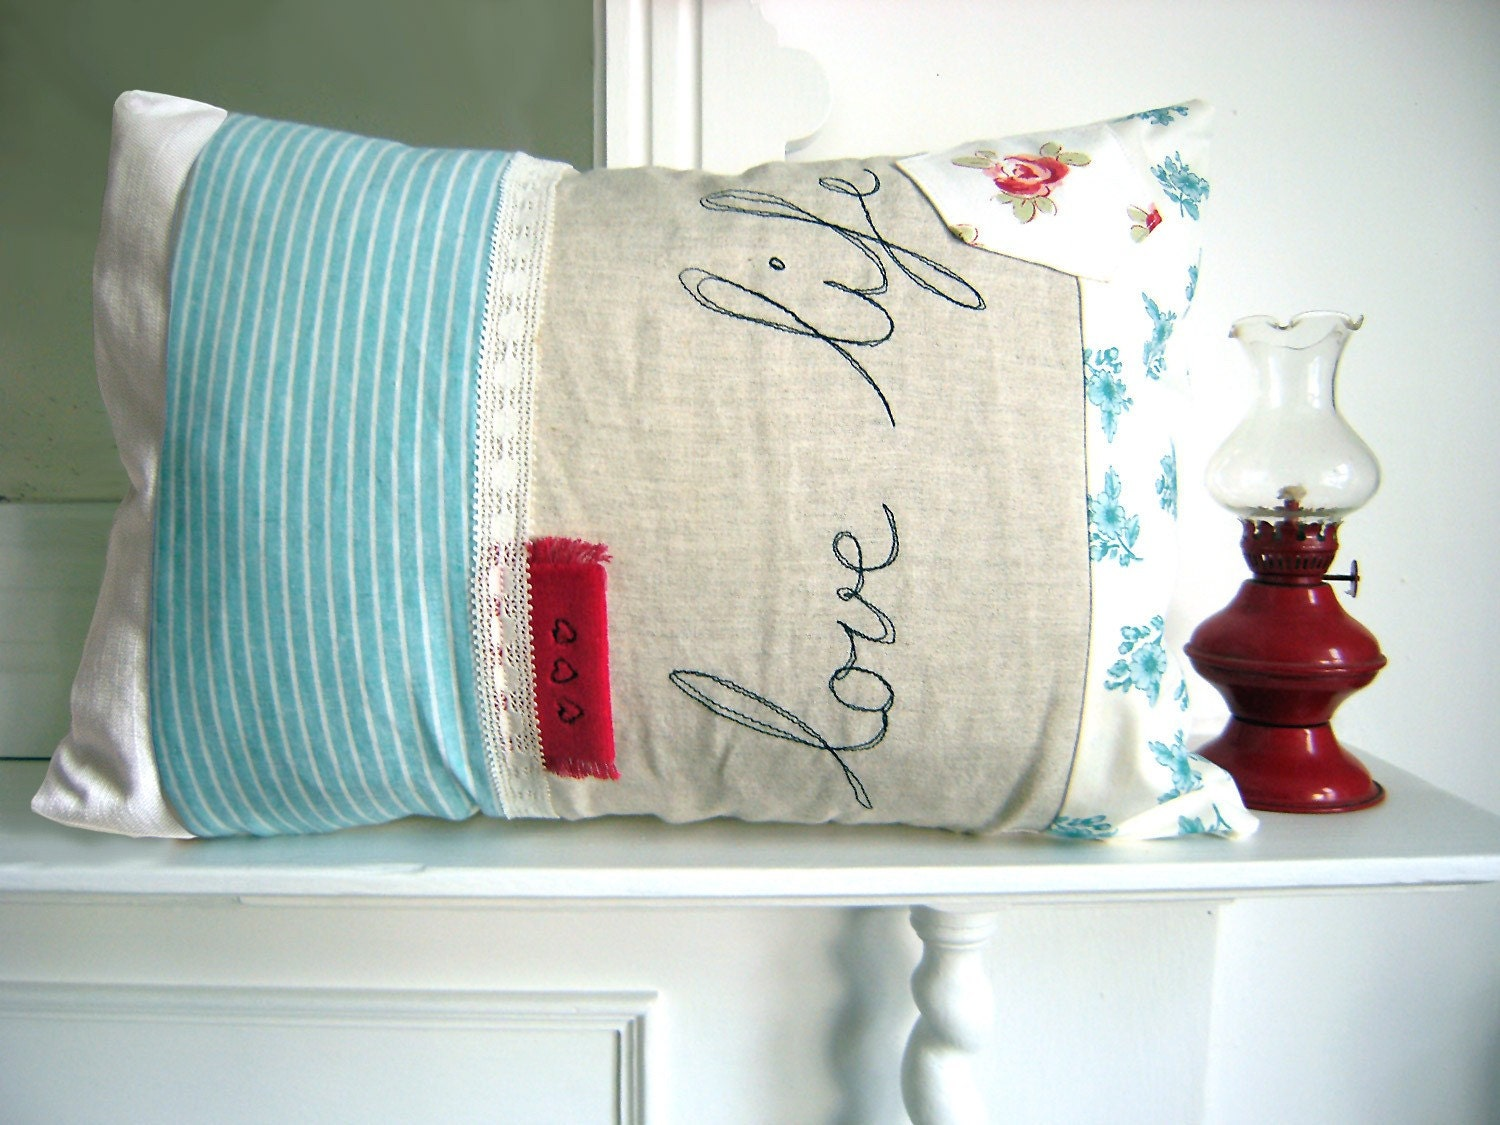 Embroidered Pillow Cover - 'Love life' cushion in turquoise and scarlet red 16 x 12